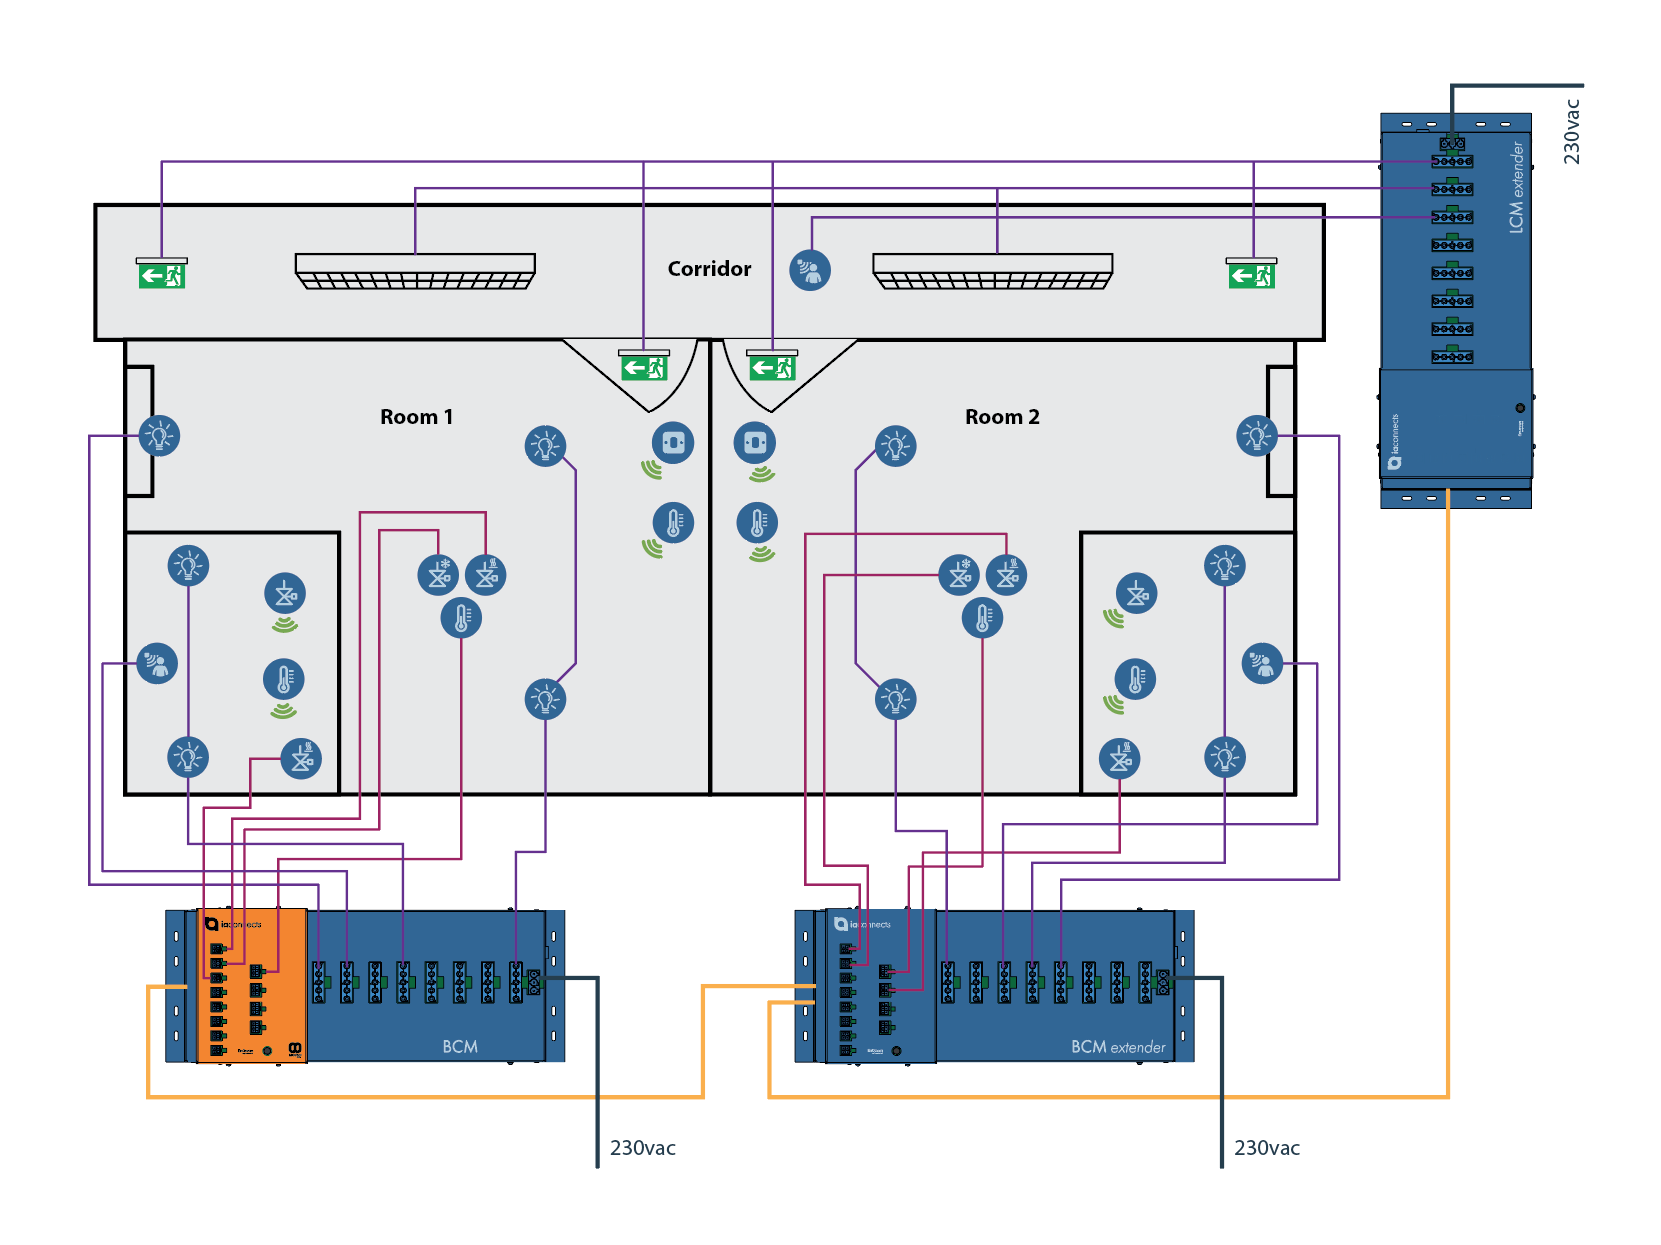 Typical Field Level Architecture using the Intelligent BCM, BCM extender and LCM extender from  ia